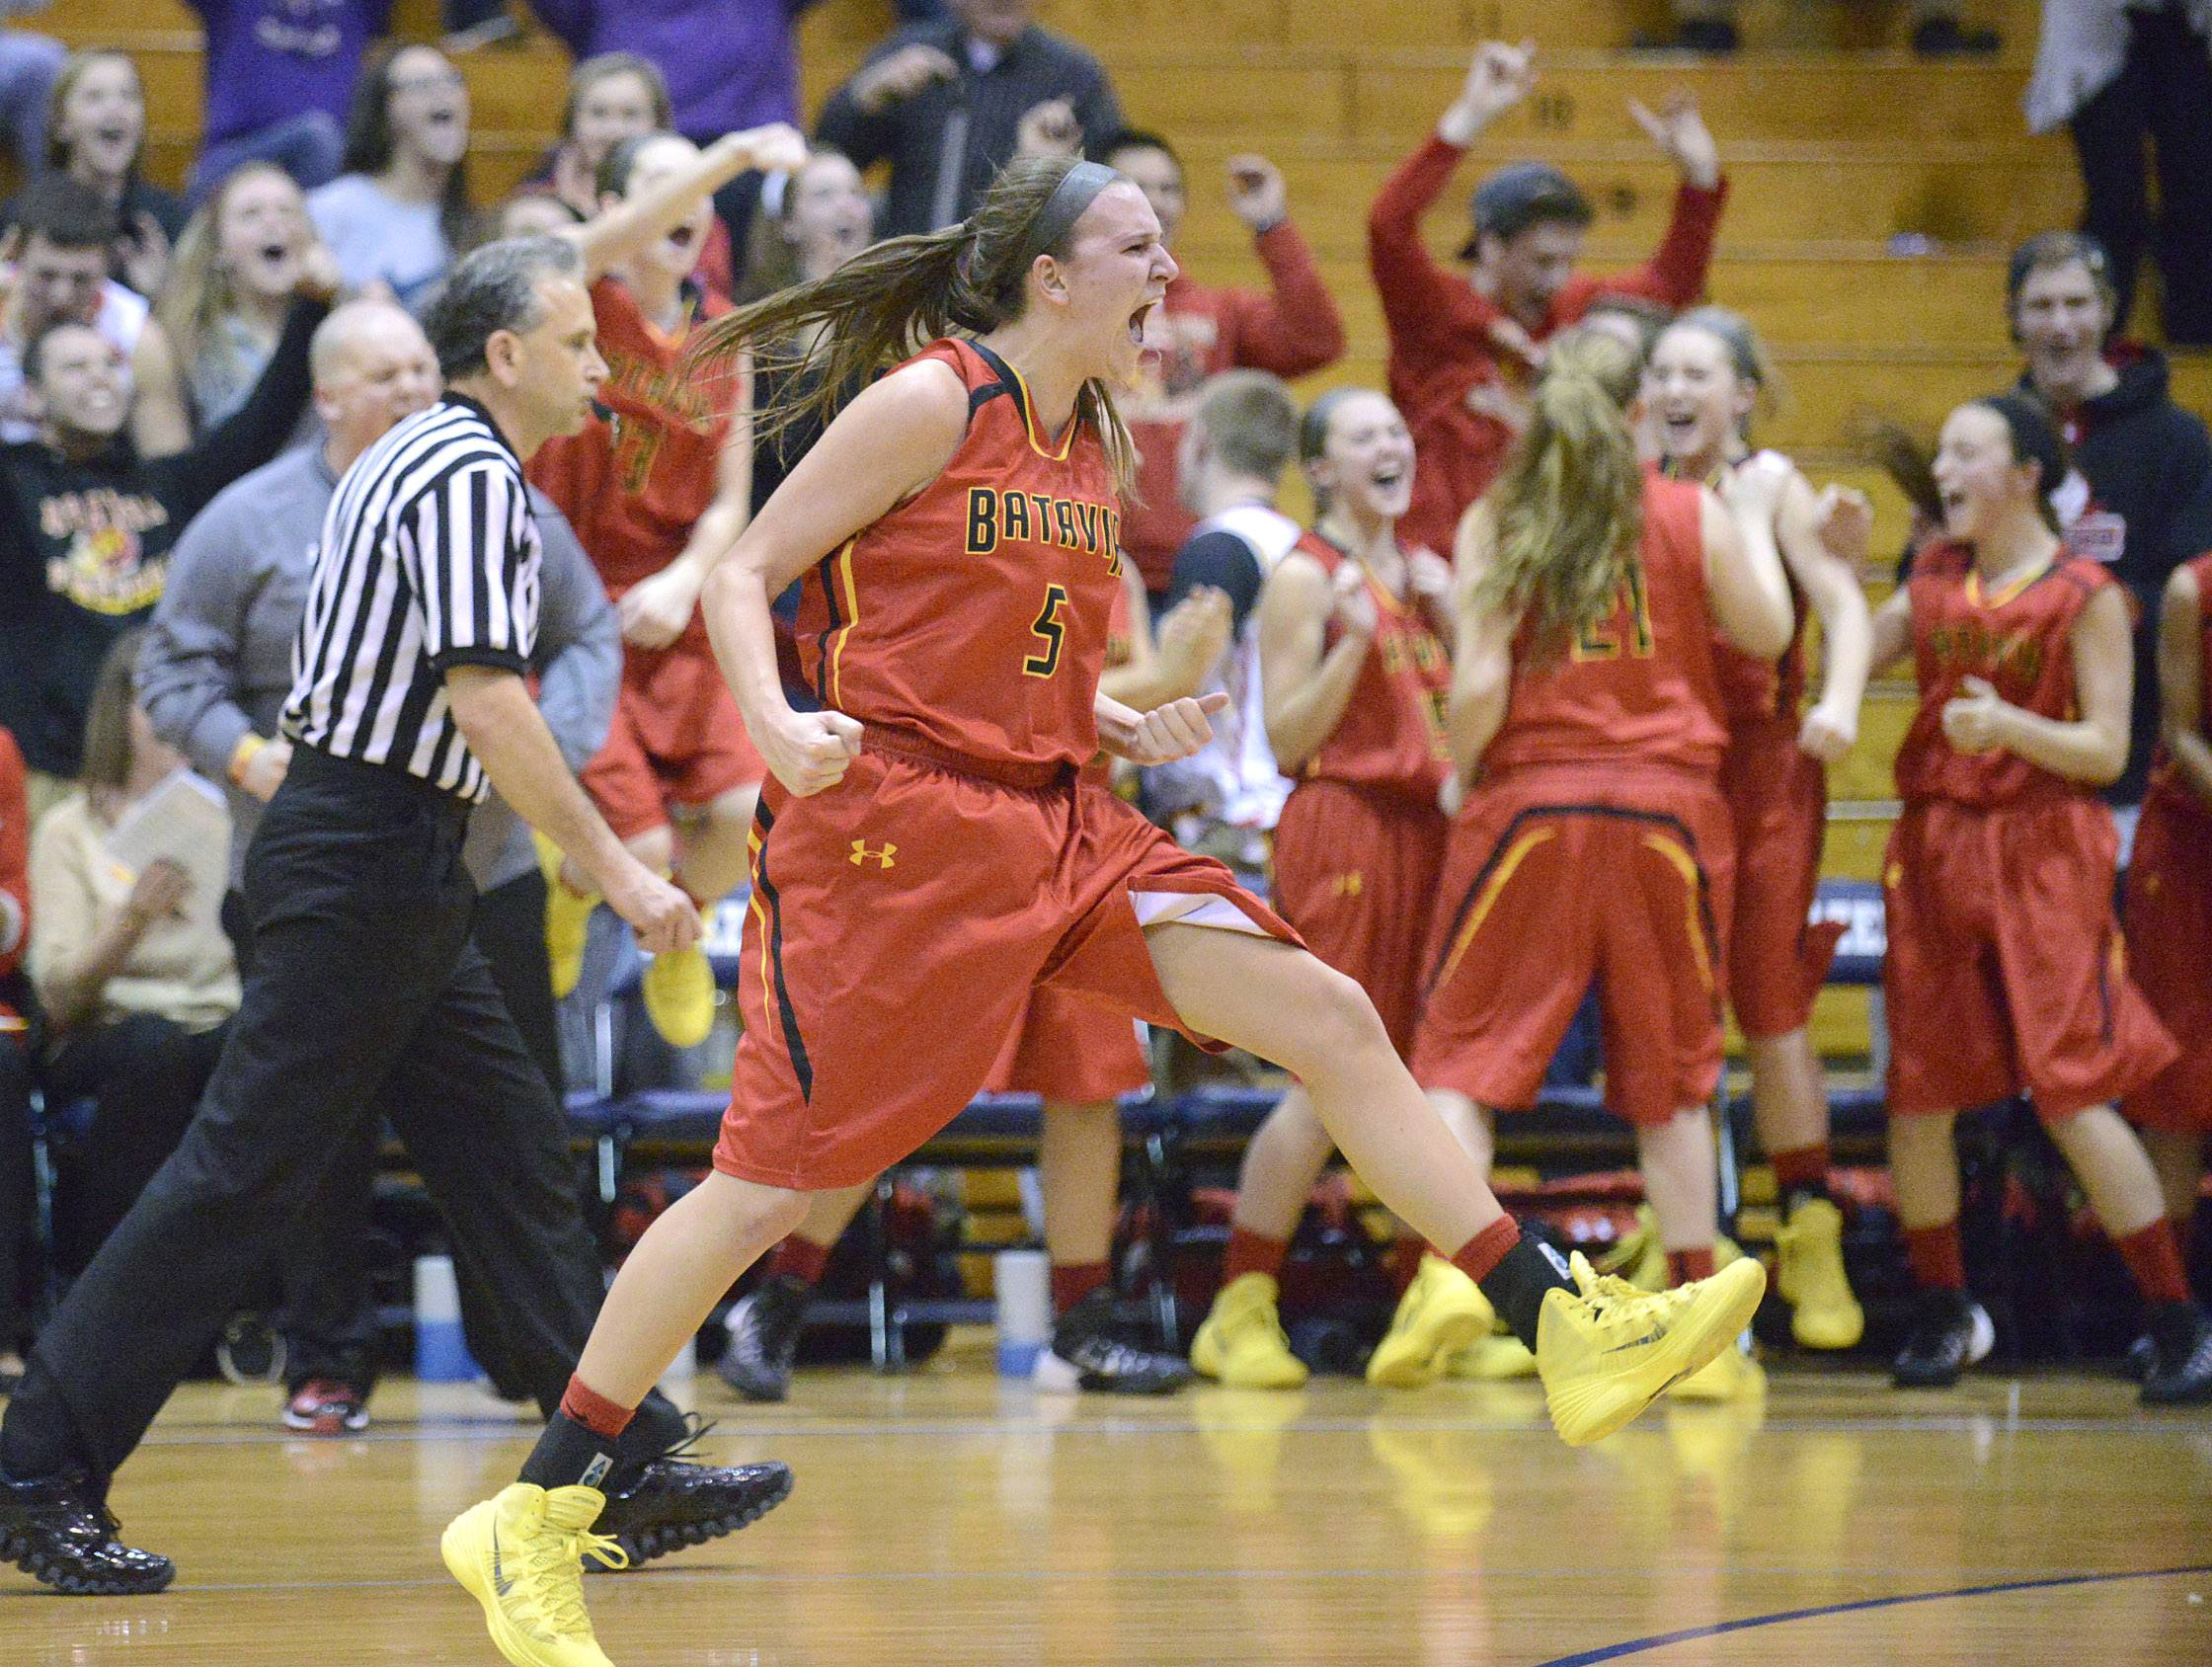 Batavia's Liza Fruendt reacts as teammate Hannah Frazier is fouled giving the Bulldogs the advantage to break tie in the final seconds of the fourth quarter vs. Downers Grove North in the 4A sectional semifinals at Addison Trail High School in Addison on Tuesday, February 25.